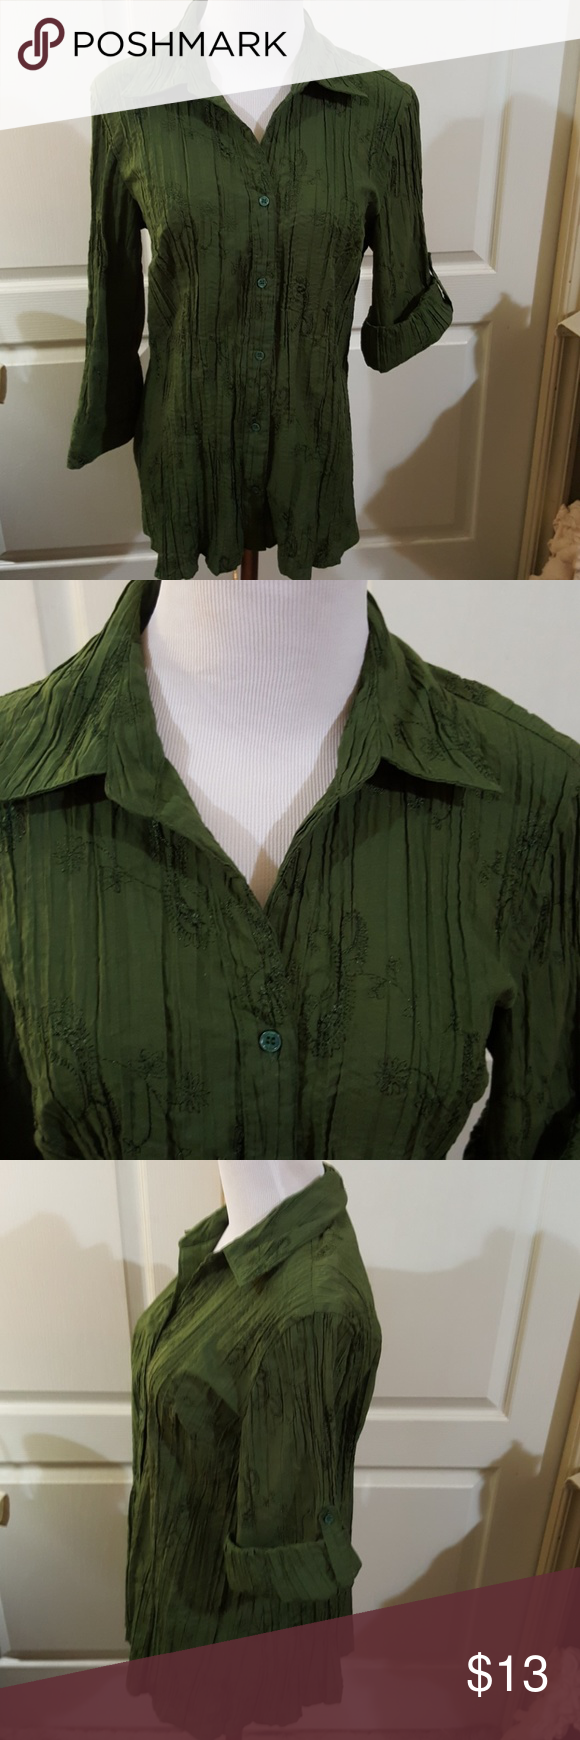 St. John's Bay Embellished Button Down Blouse. Lg. Pretty, dark green button down blouse by St. John's Bay. Embellished with darker shade of green embroidery. 3/4 length sleeves or roll them up and button them to make them shorter. No holes or stains, pilling, or pulls. Size Large. St. John's Bay Tops